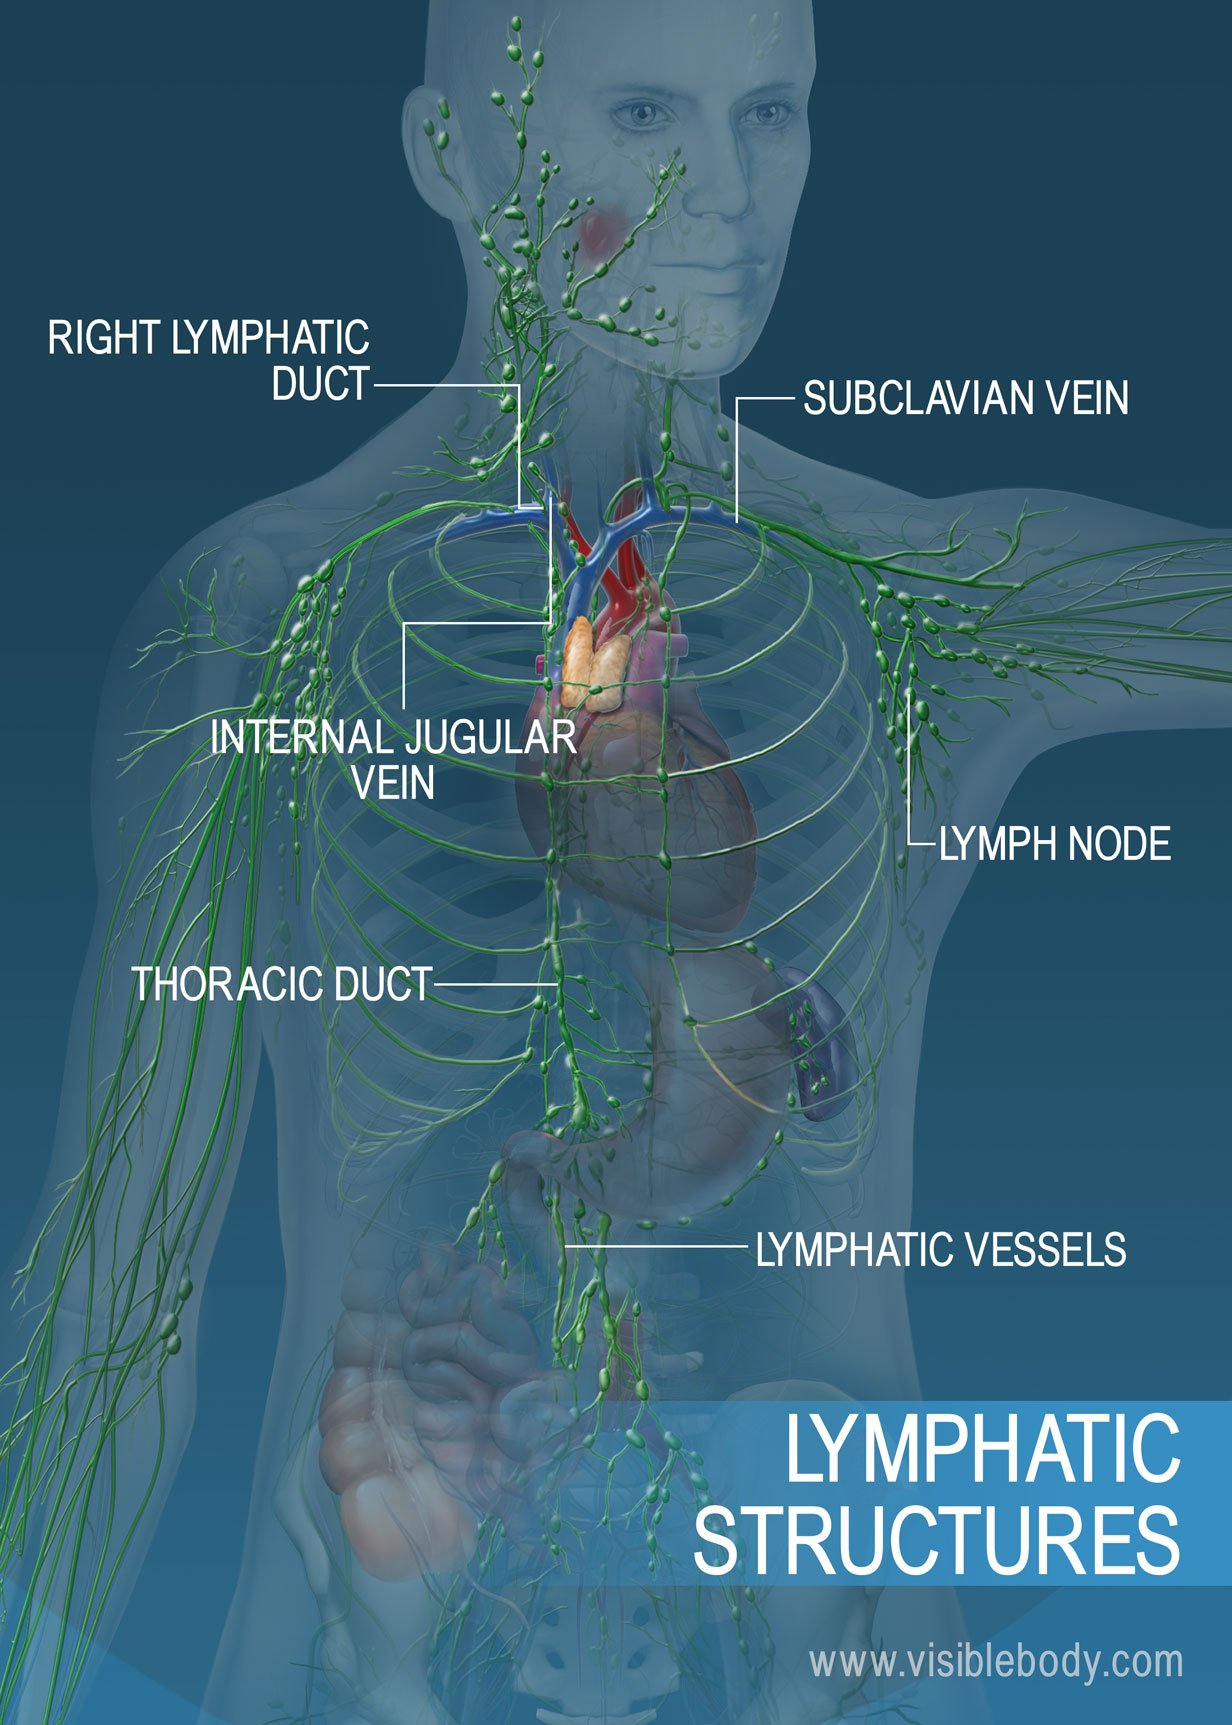 The lymphatic vessel network across the torso and arms. Major structures include the thoracic duct, the right lymphatic duct, and lymphatic vessels.